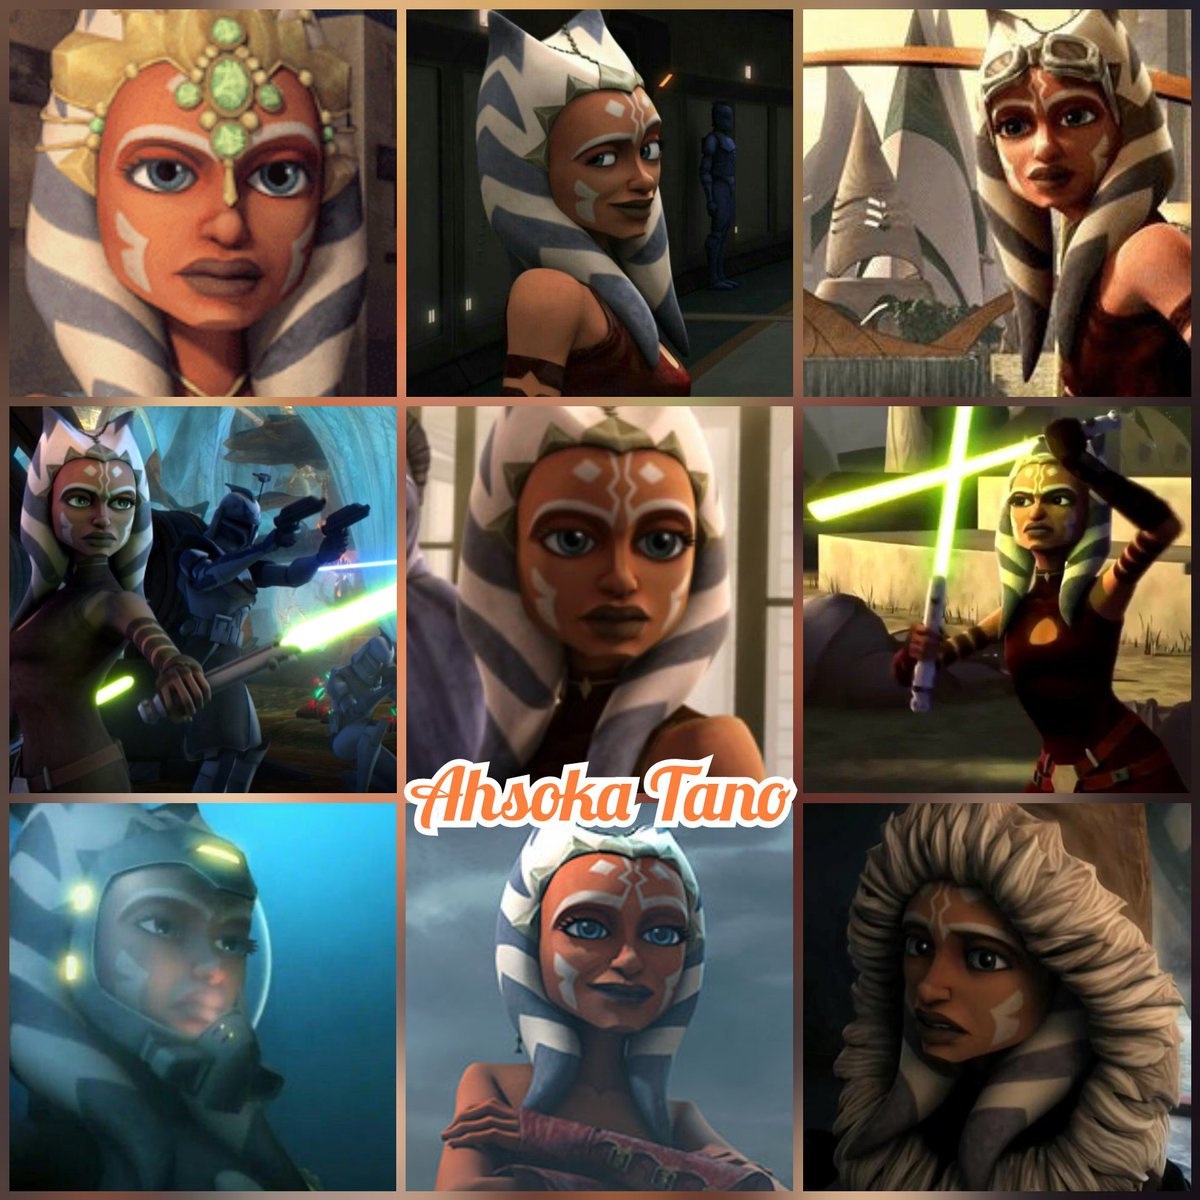 390 votes arrived our winner is Ahsoka Tano 🏆